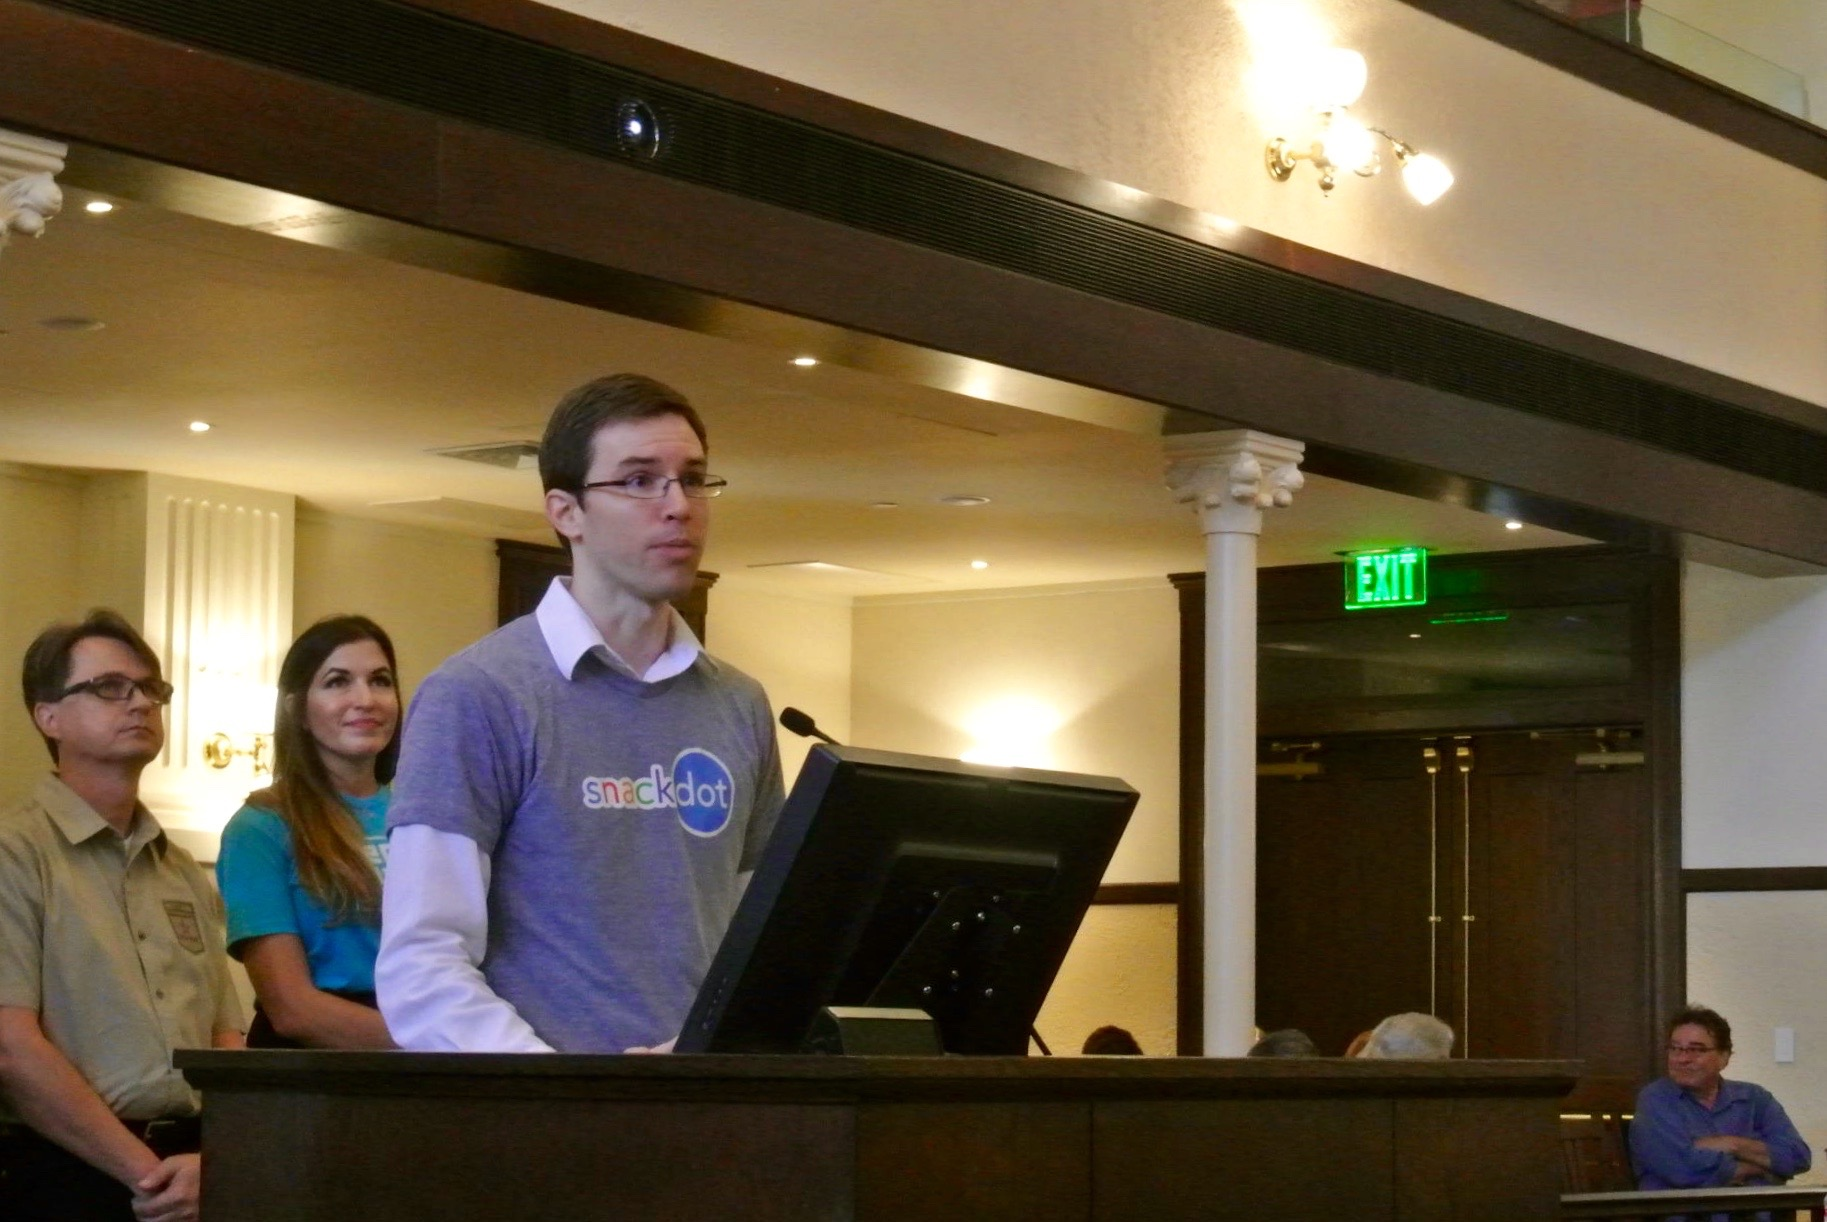 SnackDot Founder Chris Turner presents his startup to the County Commissioners. Photo by Sarah Talaat.